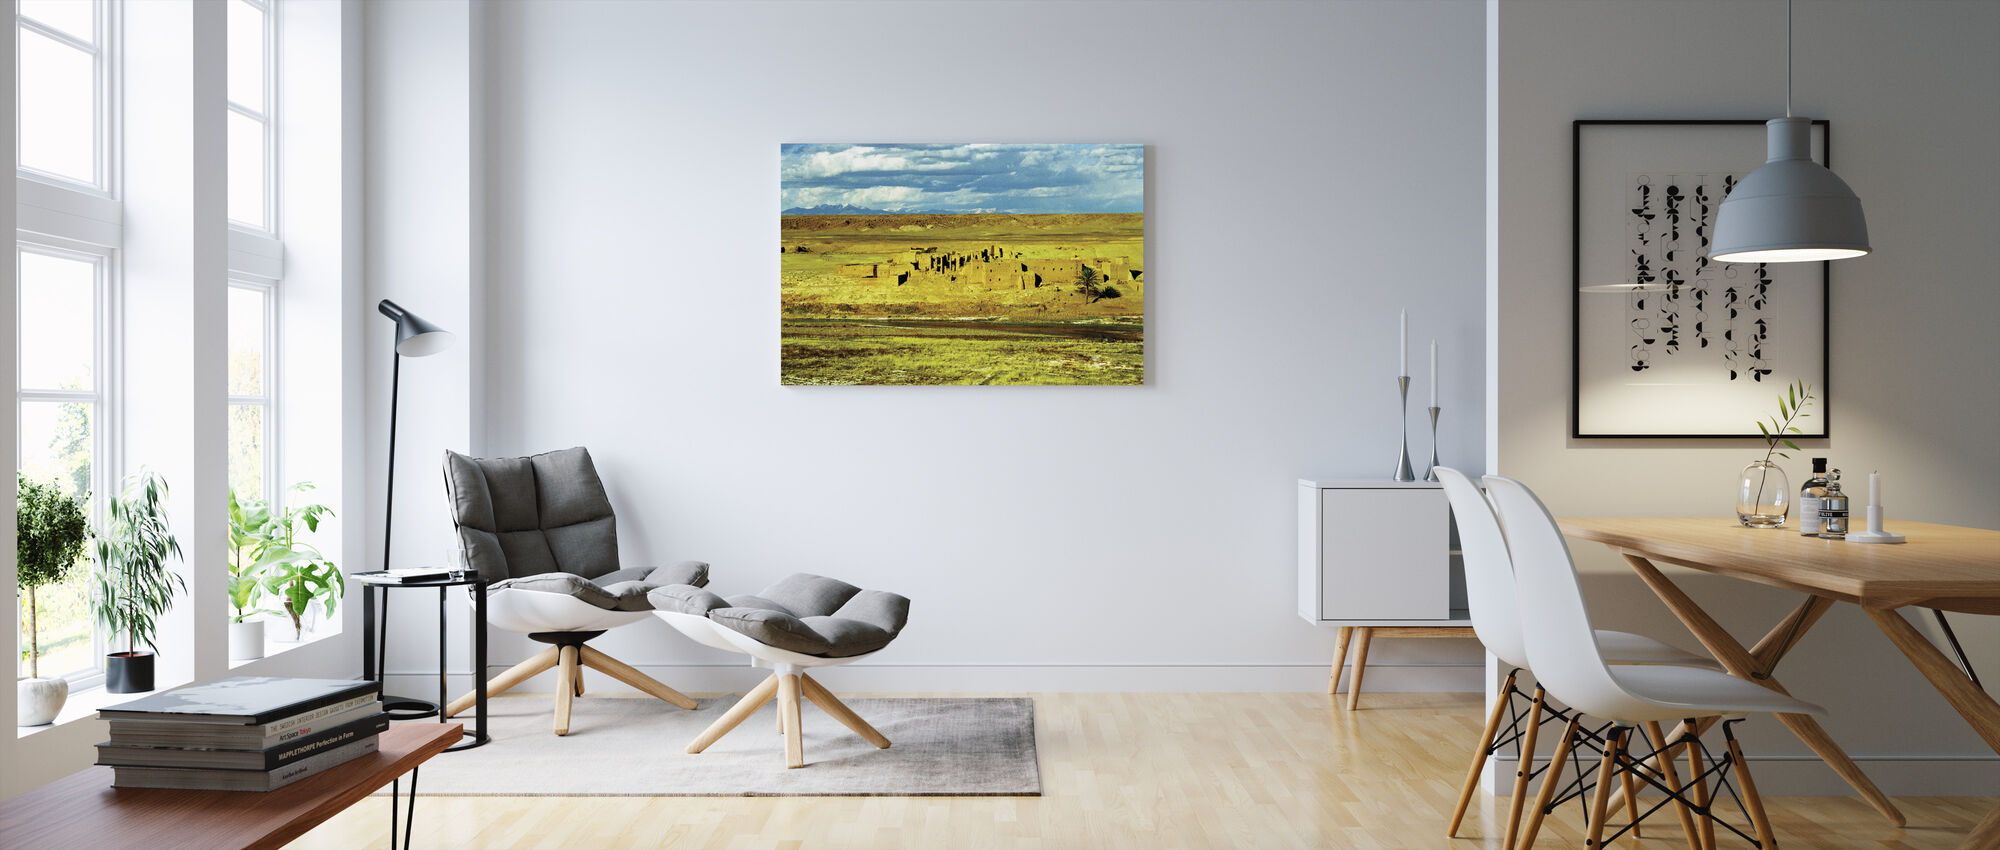 Empty City - Canvas print - Living Room